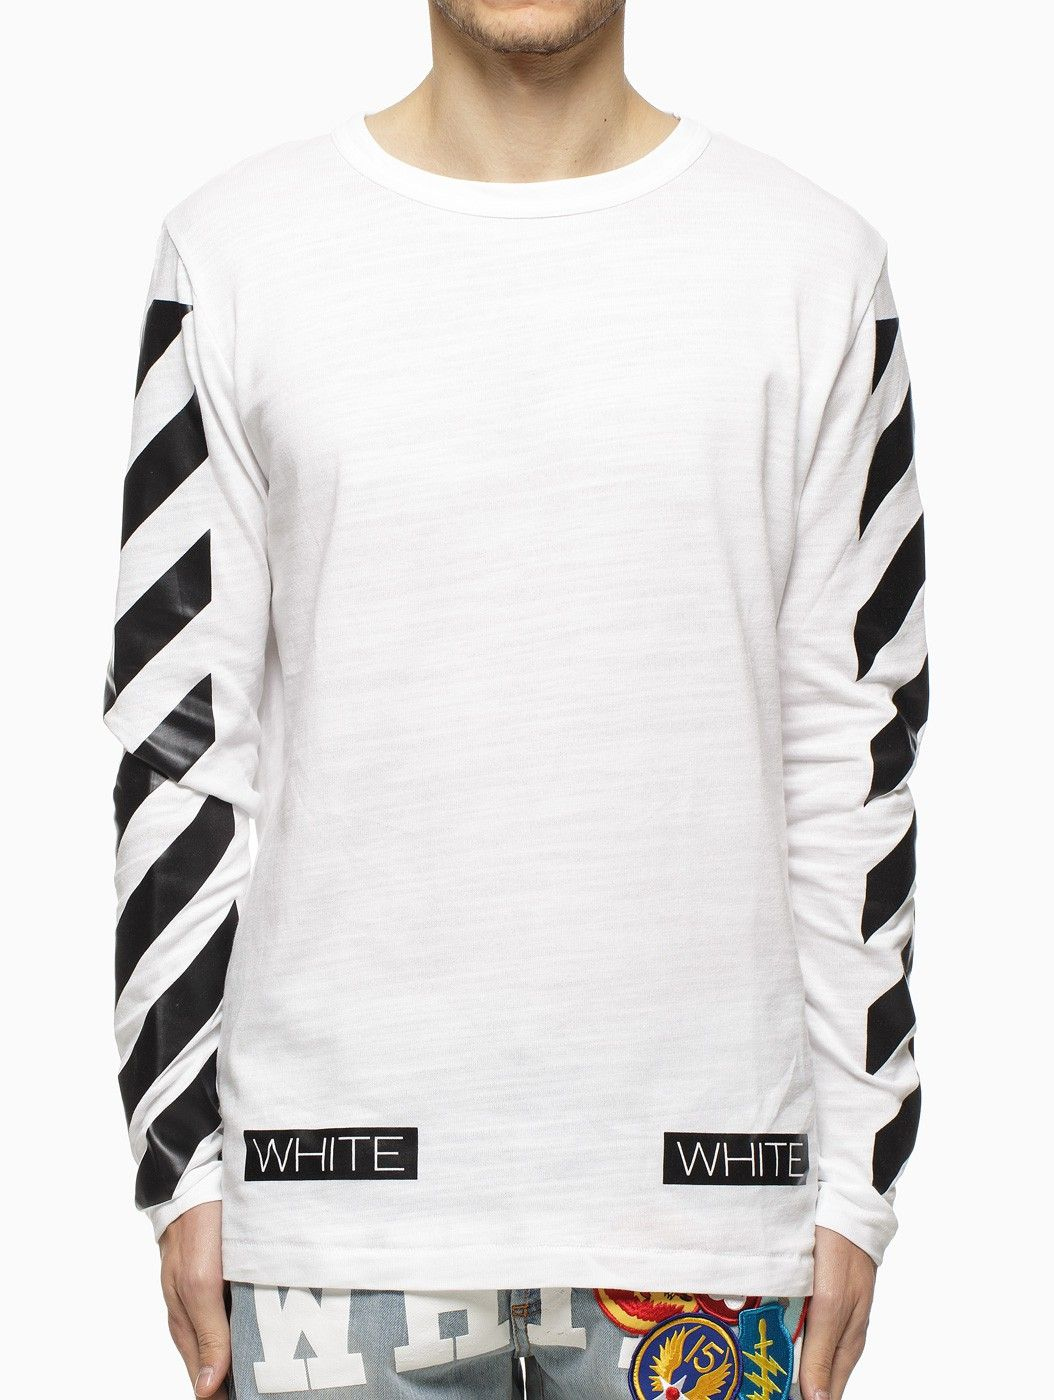 061220579f07 Striped long sleeve t-shirt from the S S2015 Off-White c o Virgil Abloh  collection in white.